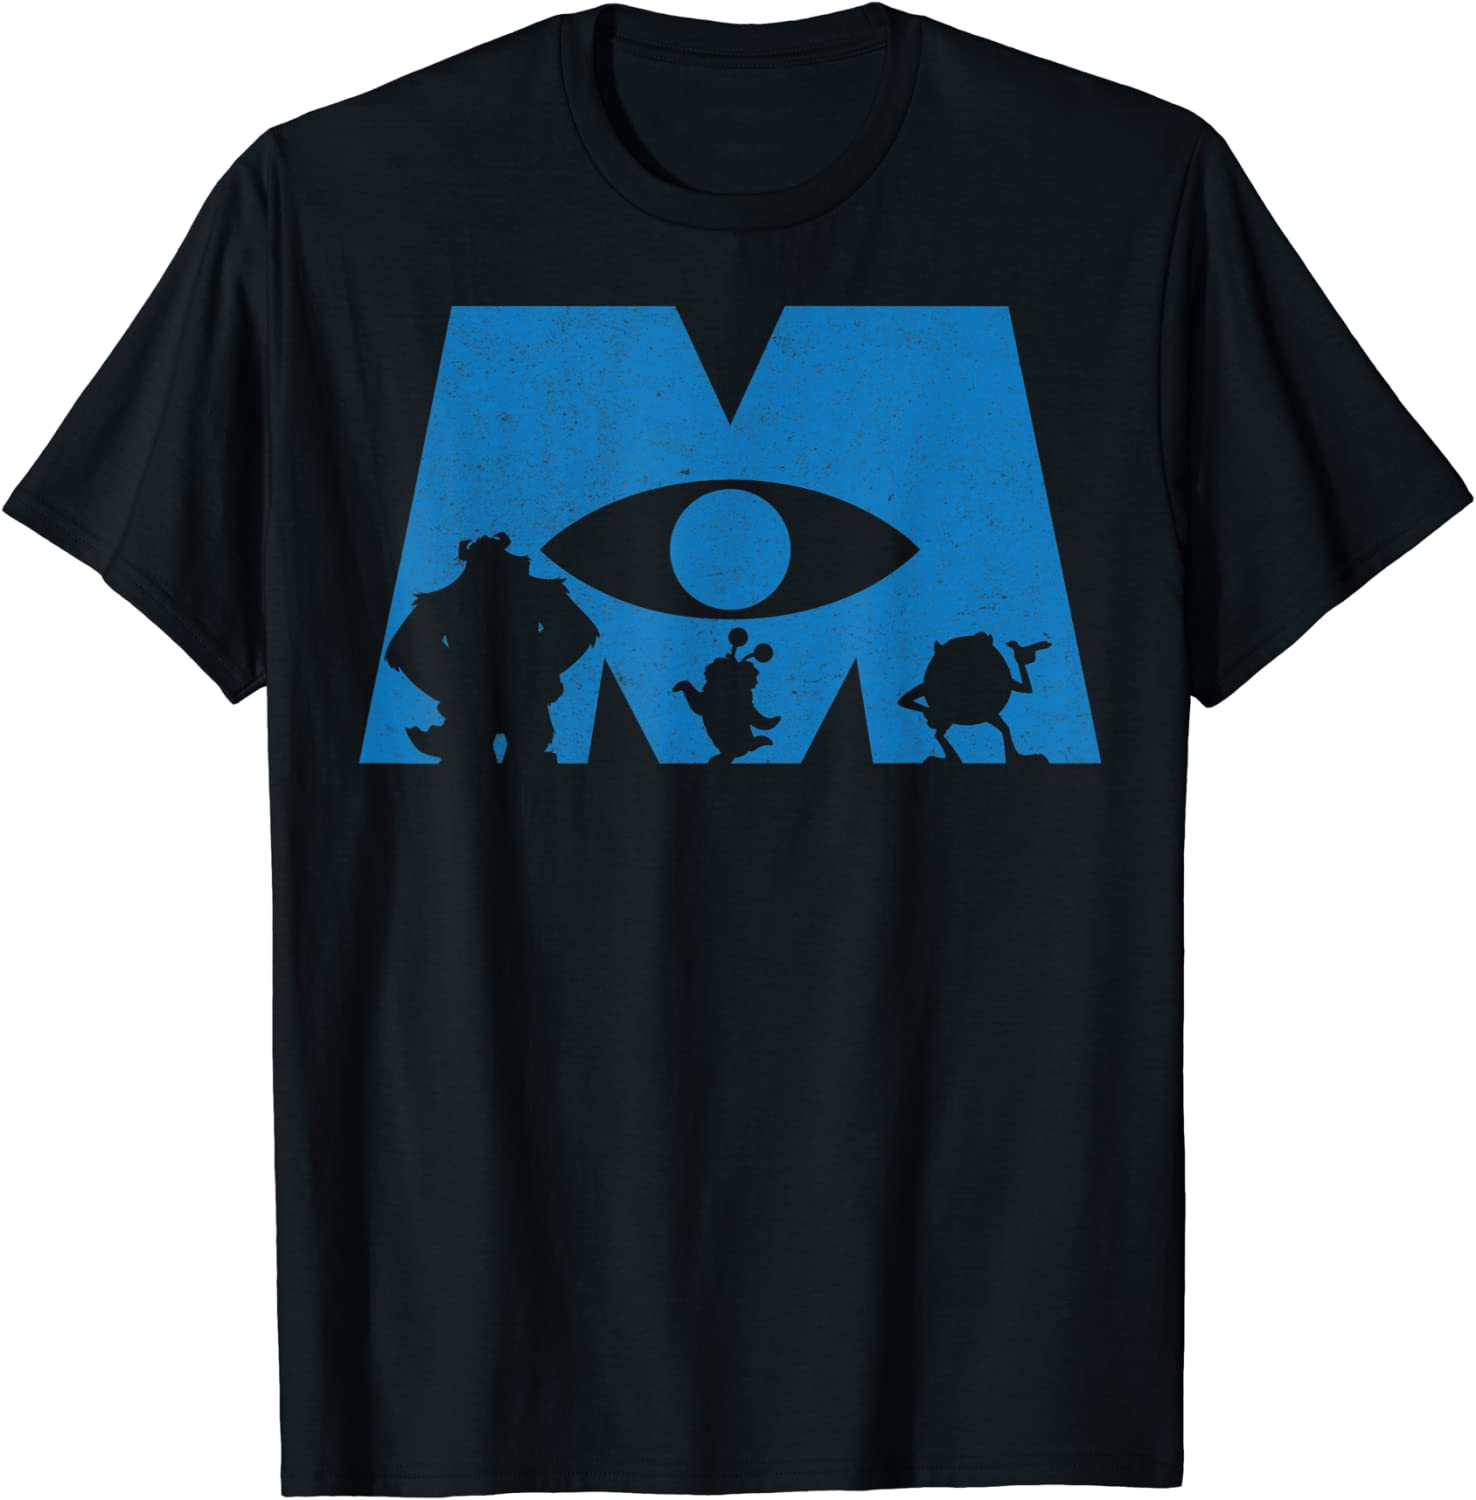 free shipping Disney Monsters Inc. Logo Graphic Silhouette T-Shirt 5% OFF